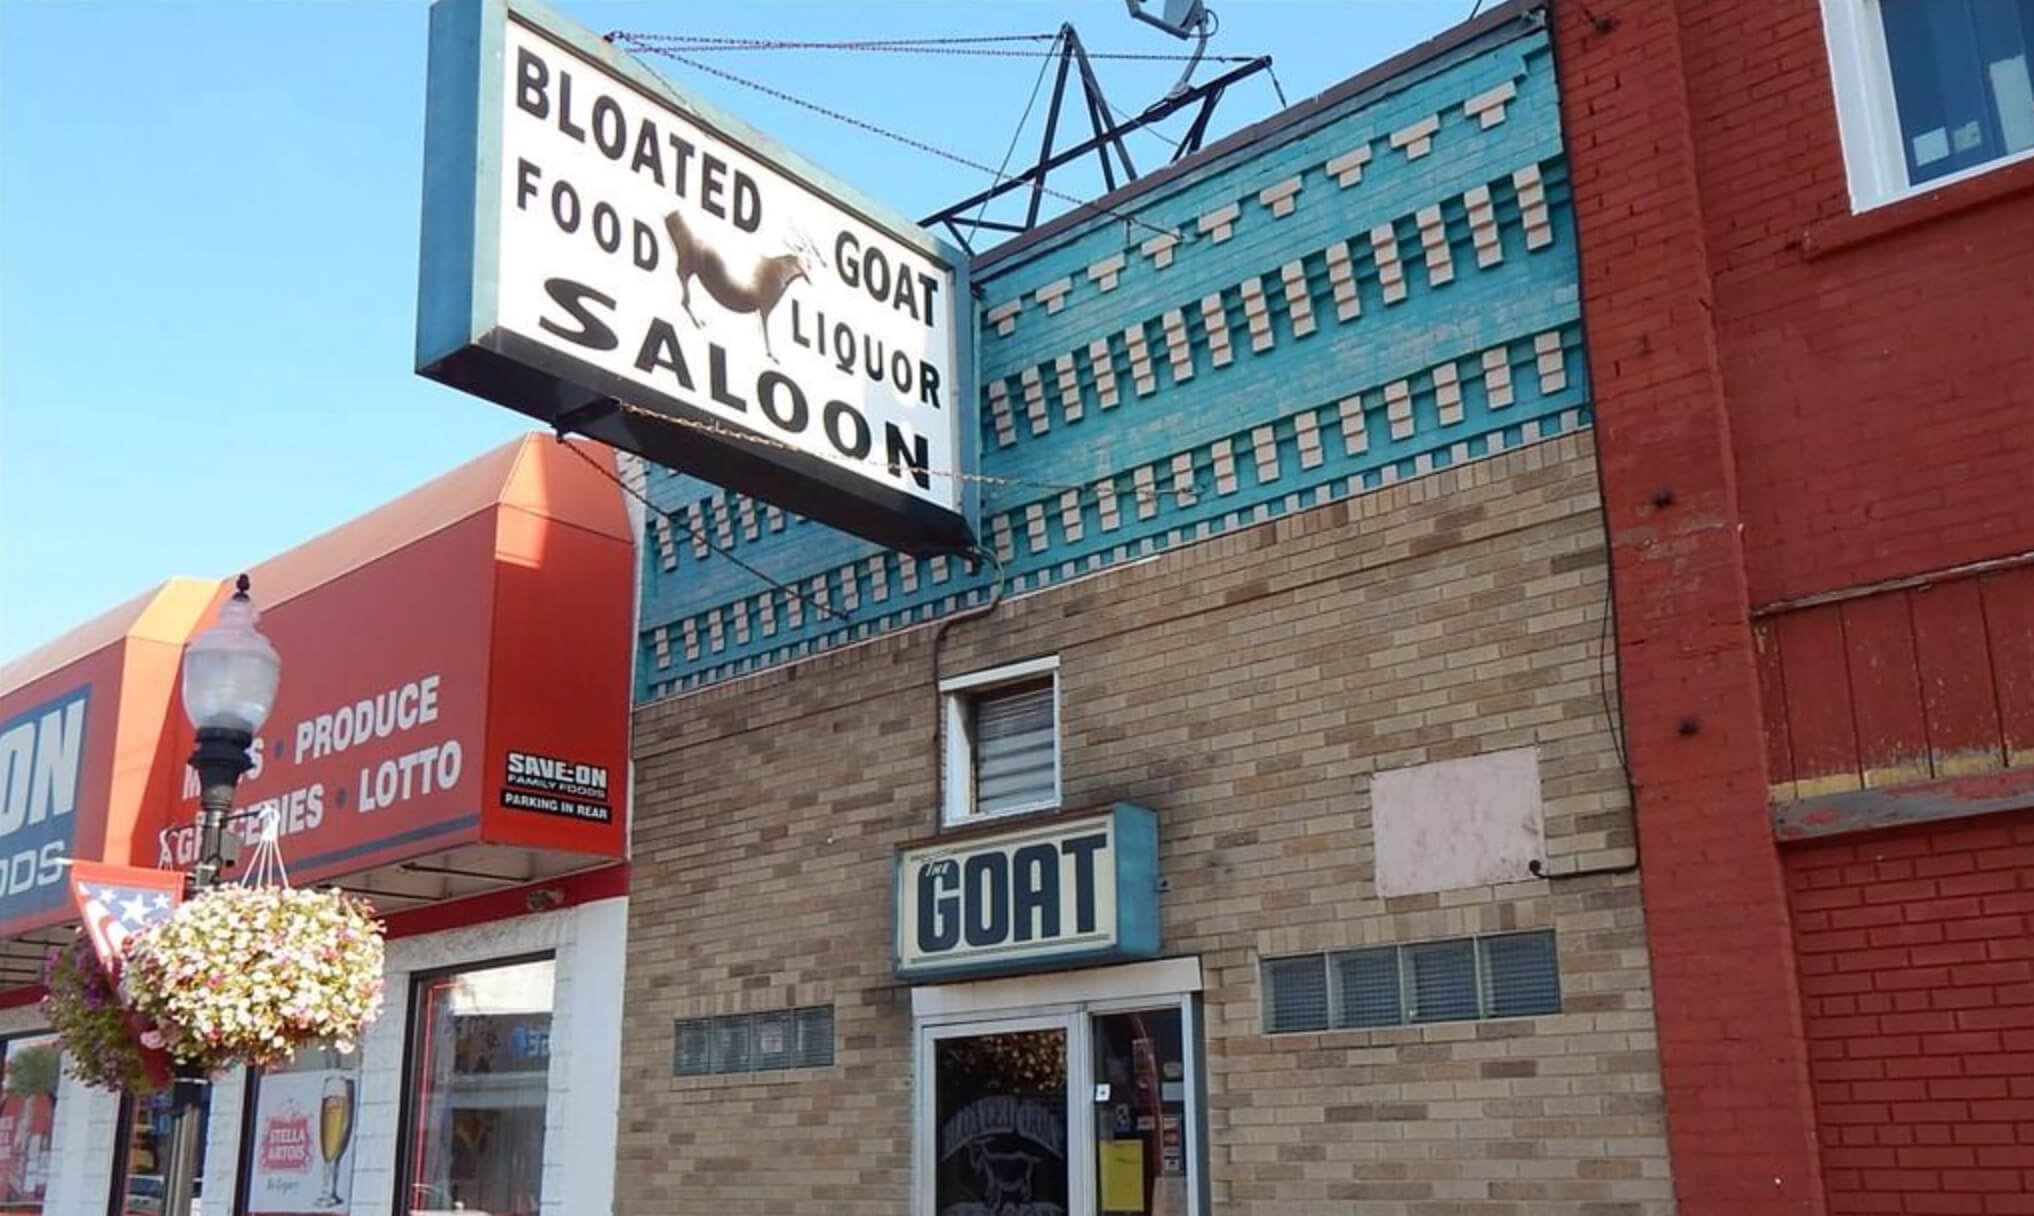 The Bloated Goat Saloon in downtown Fowlerville.